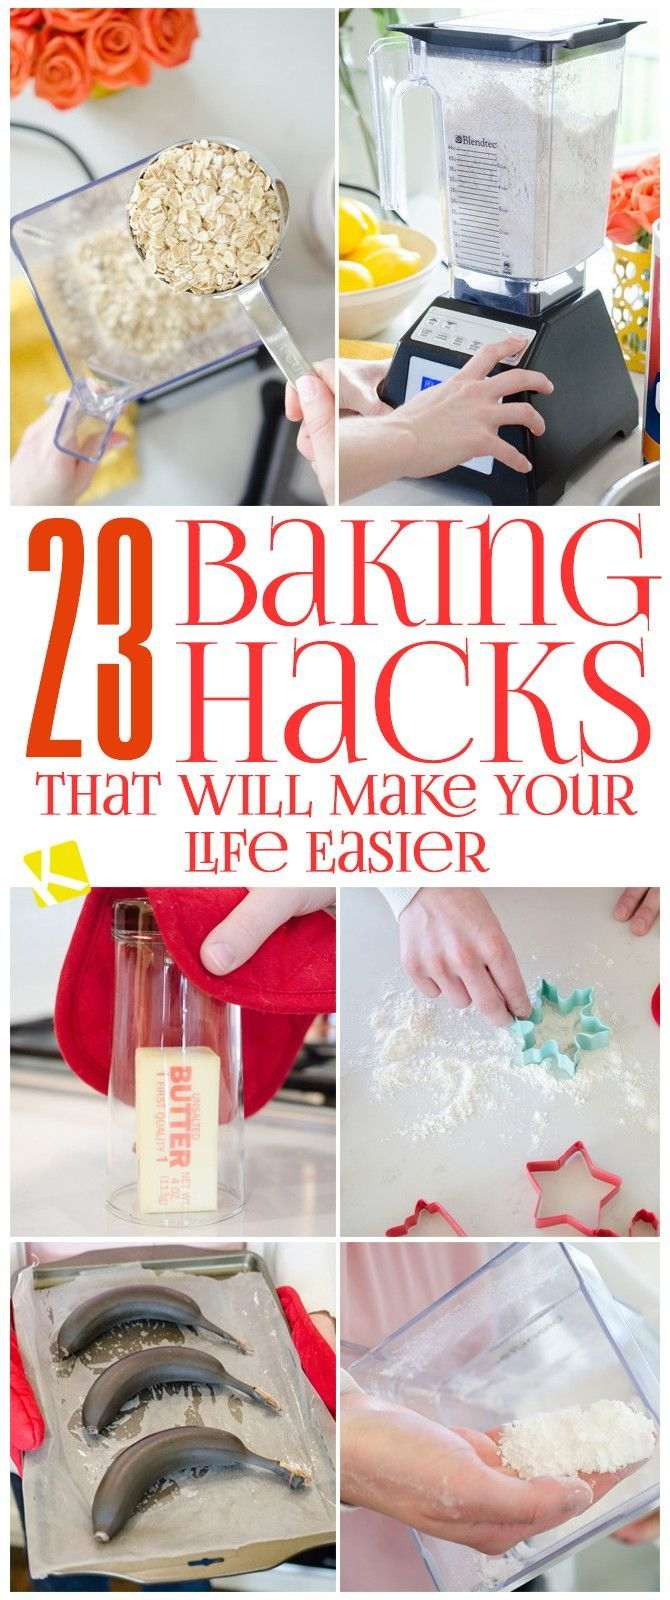 23+Genius+Baking+Hacks+That+Will+Make+Your+Life+Easier